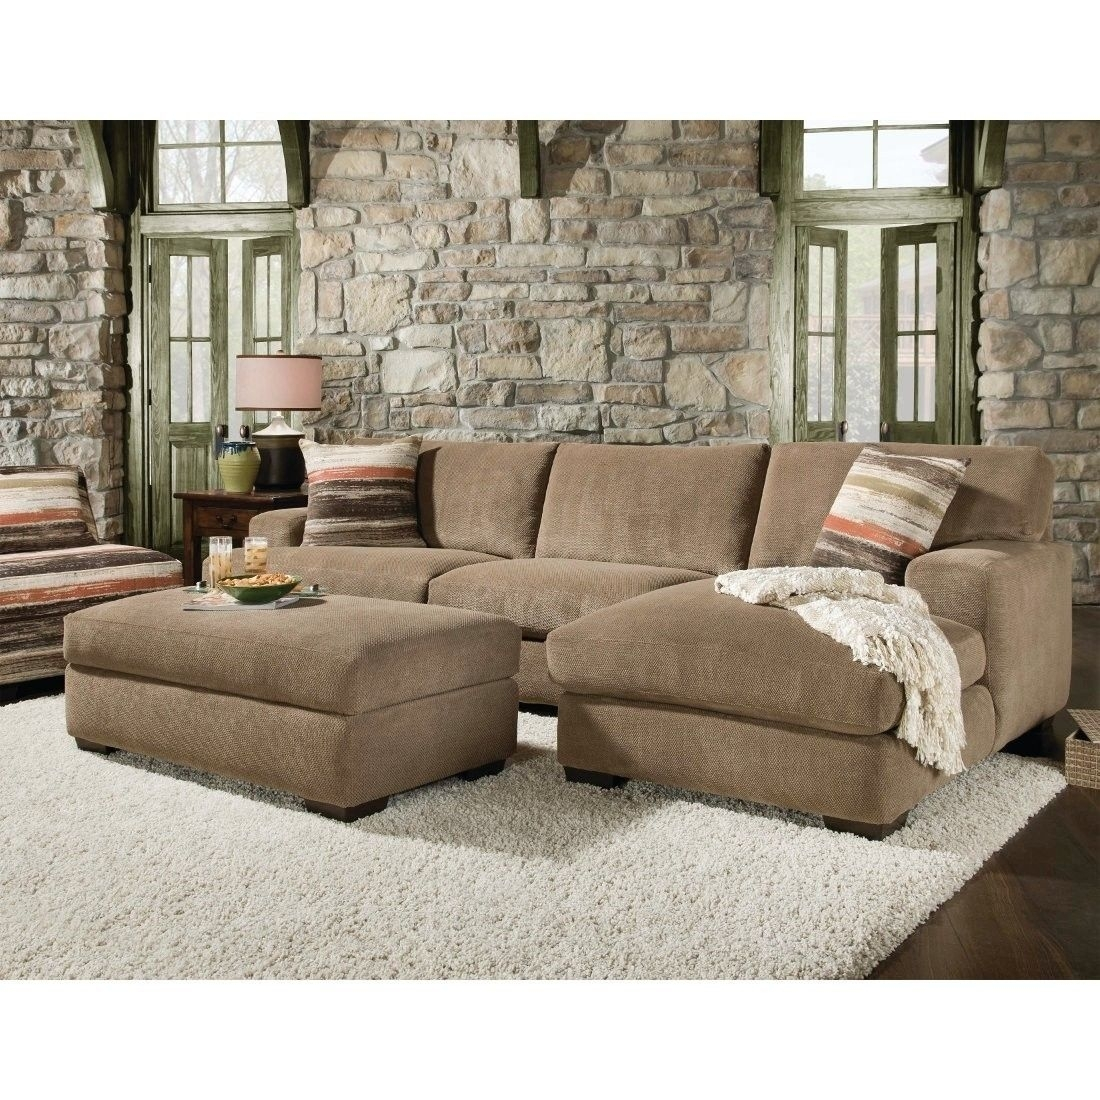 Popular Photo of Small Sectional Sofas With Chaise And Ottoman